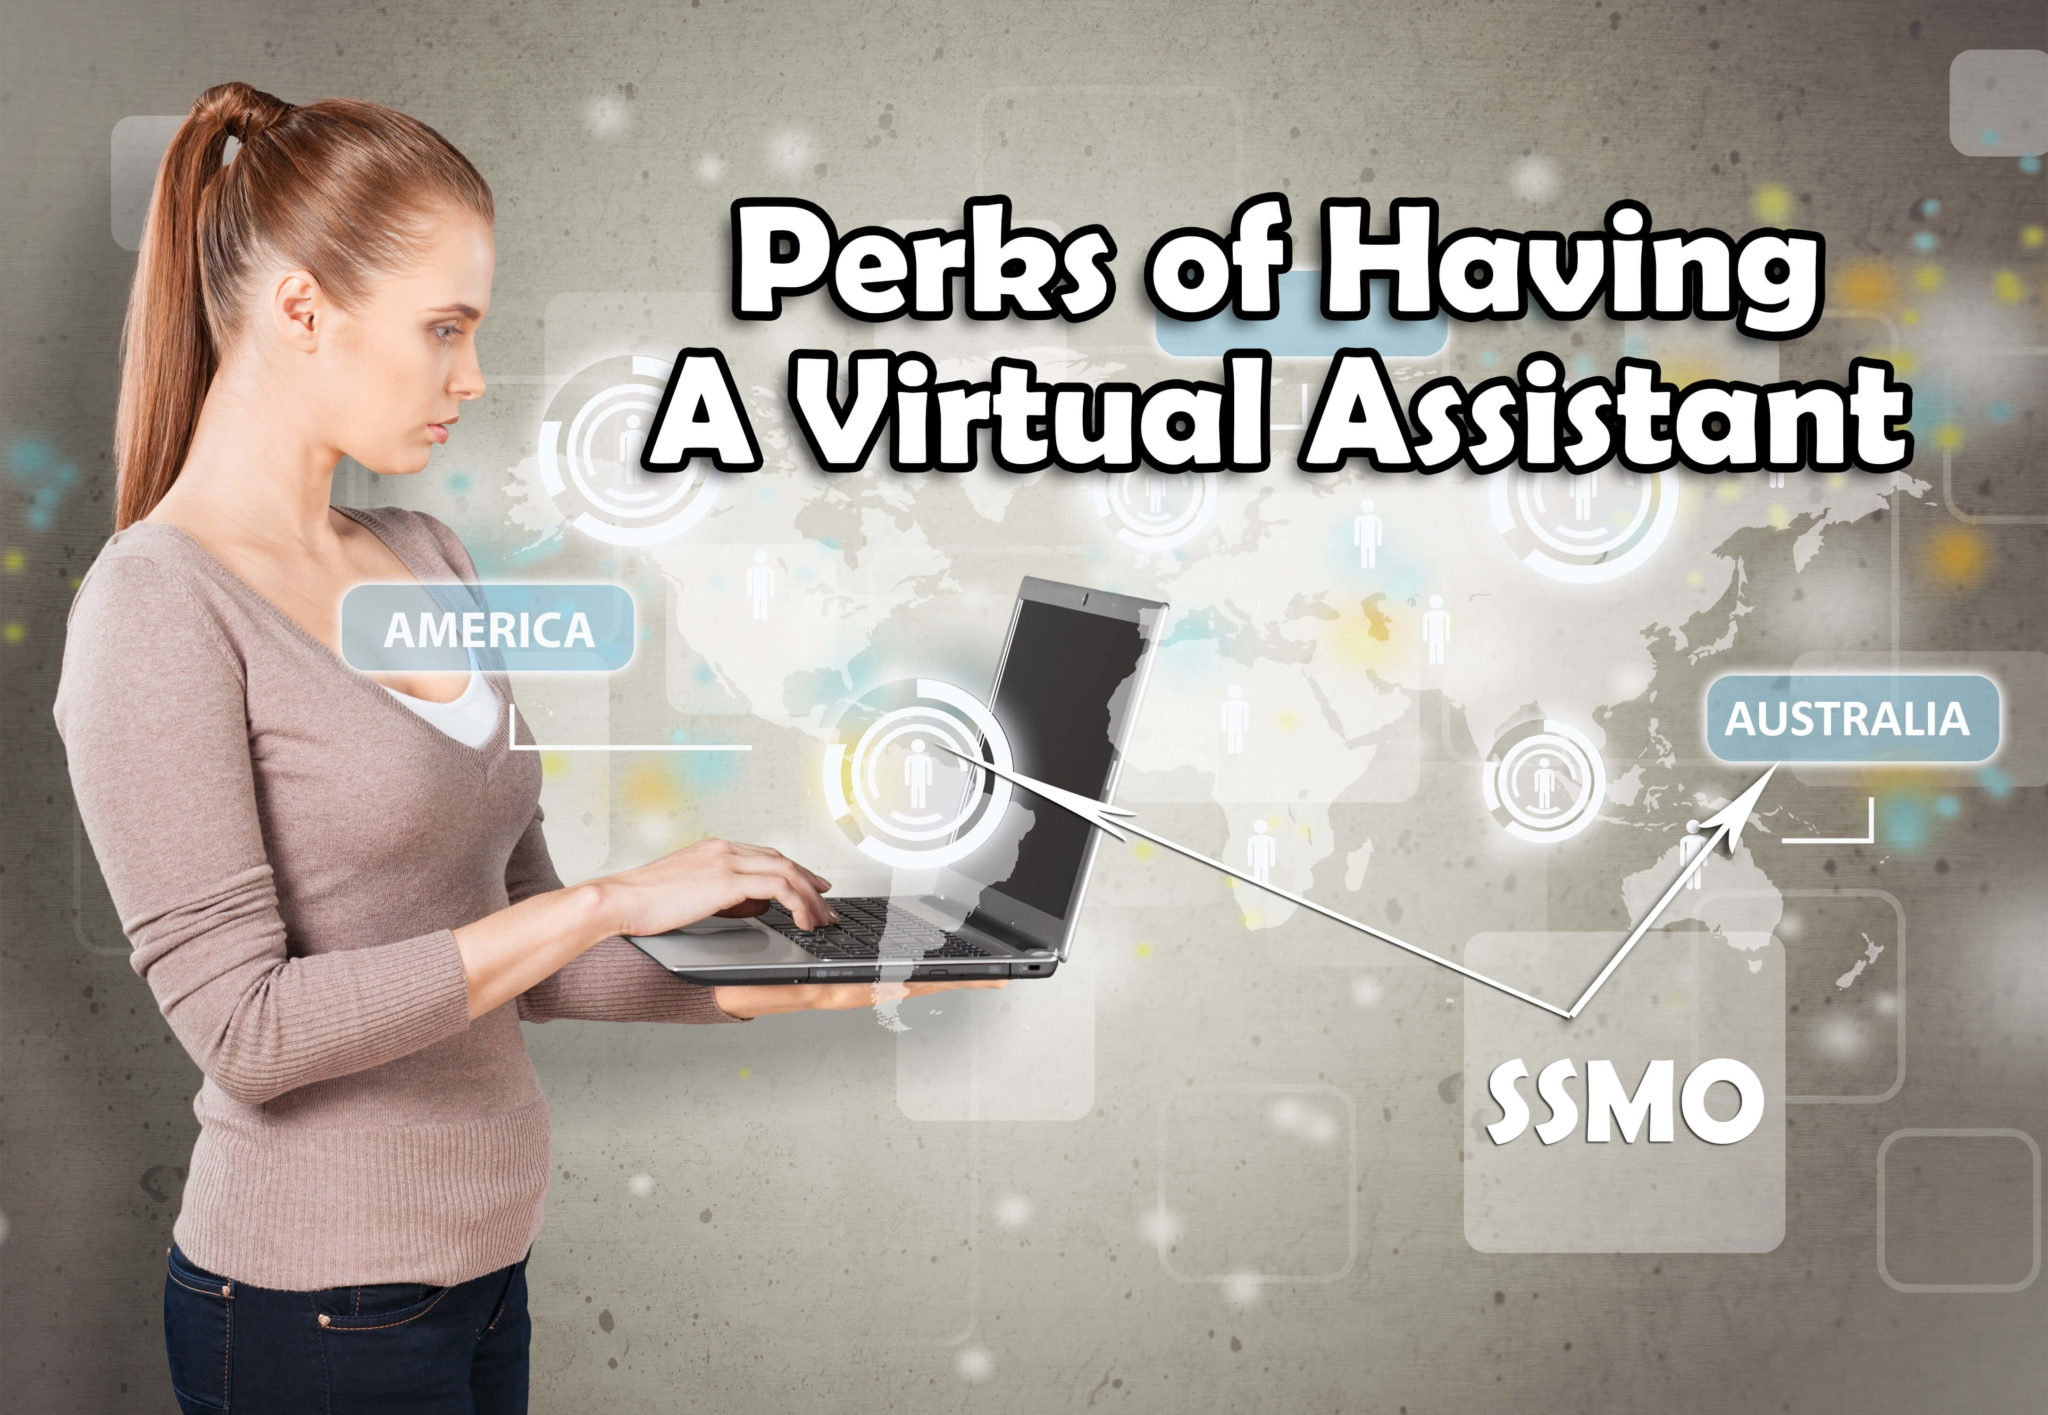 Perks of Having A Virtual Assistant